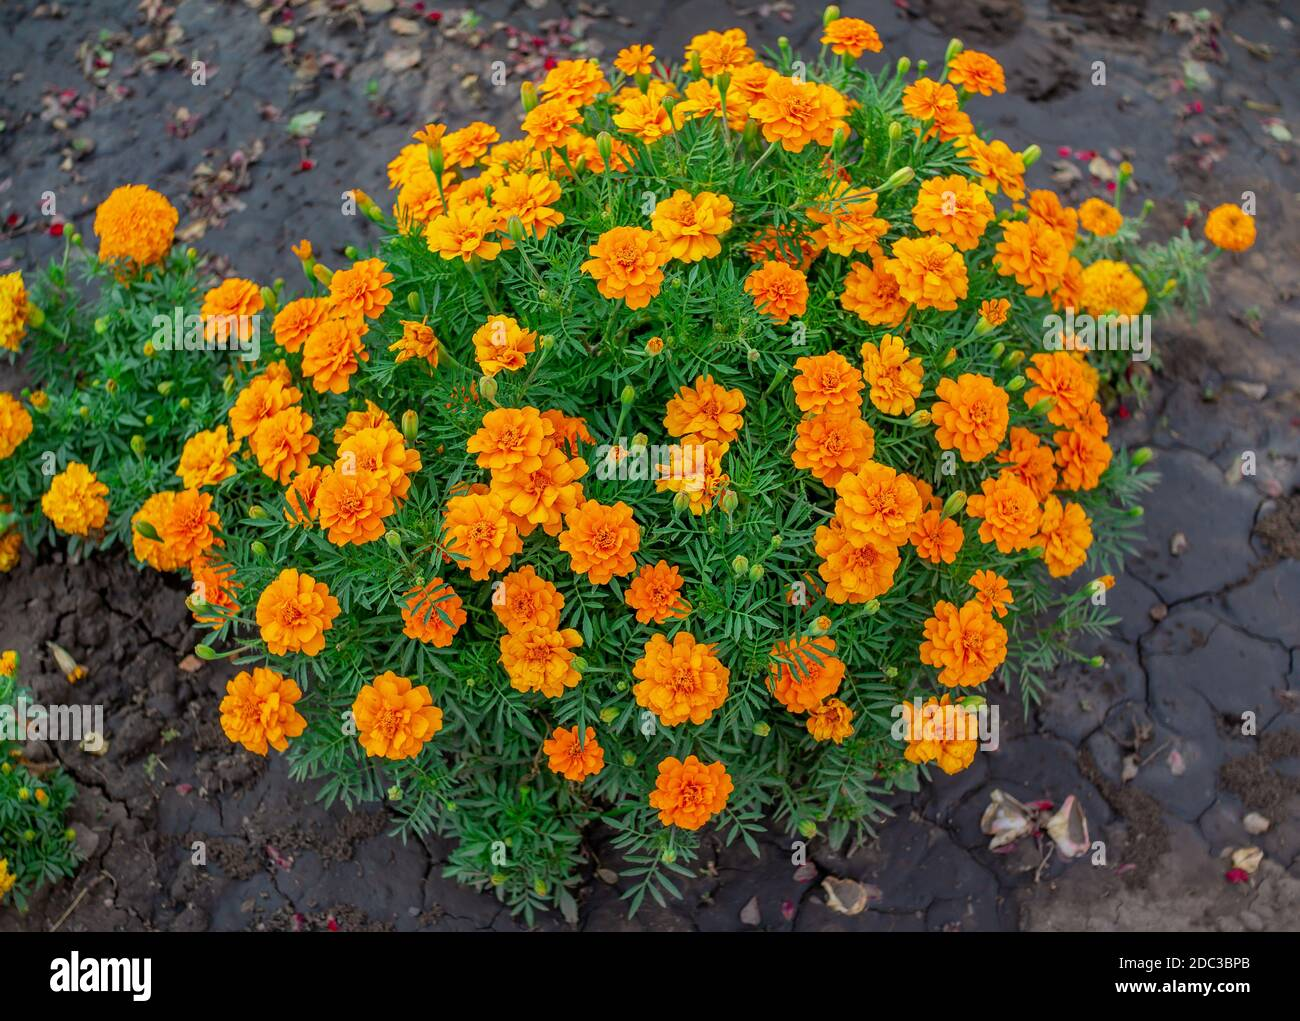 Beautiful bright orange tagetes or Marigold flowers, growing in the garden Stock Photo